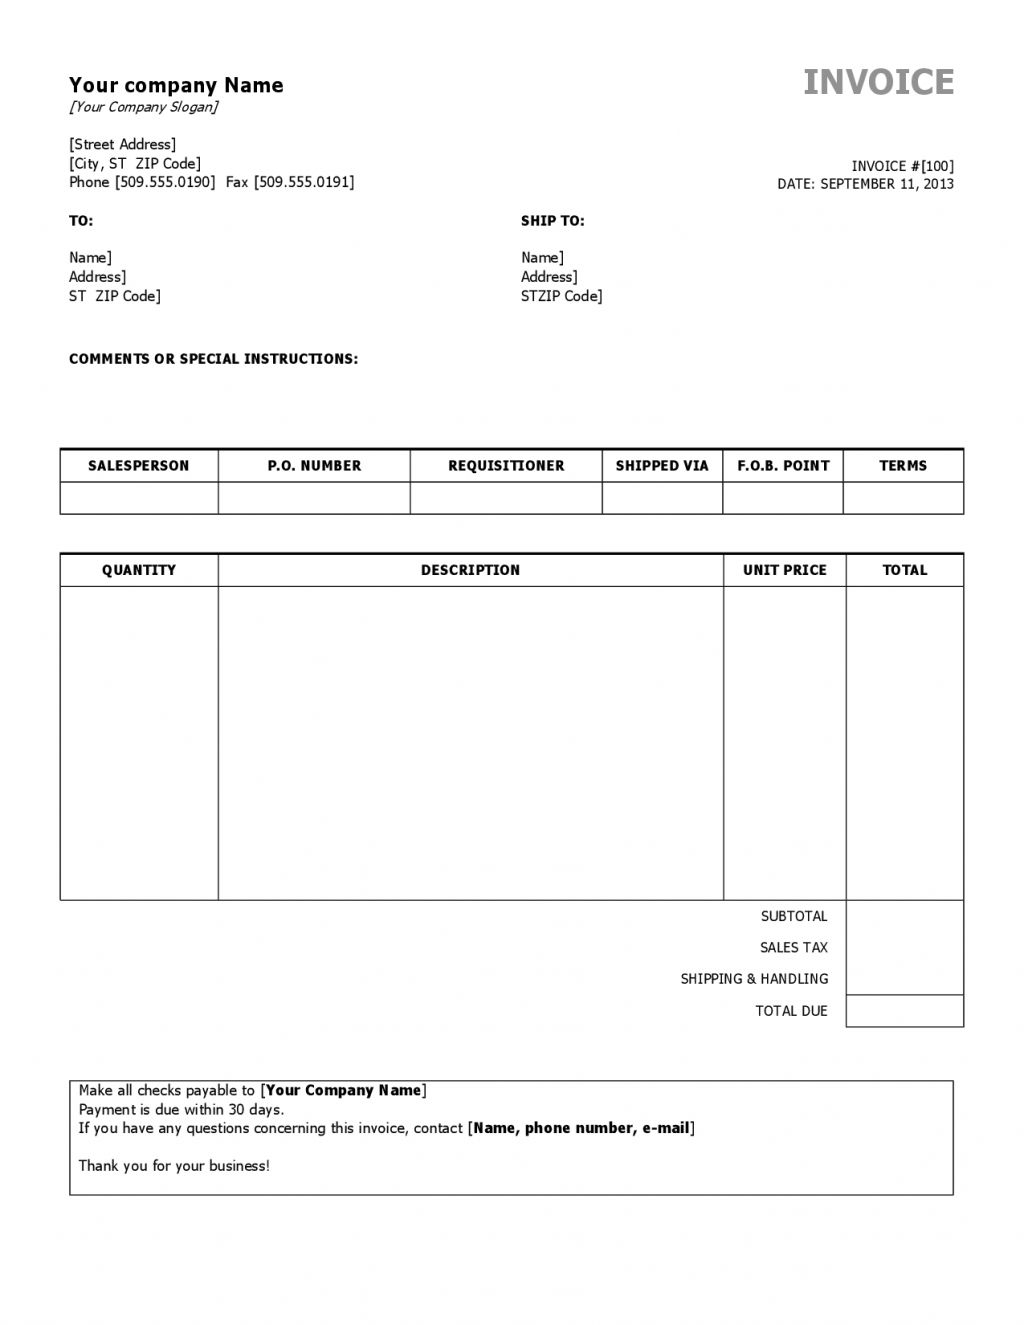 Copy Of An Invoice Invoice Template Ideas - Copy of invoice template